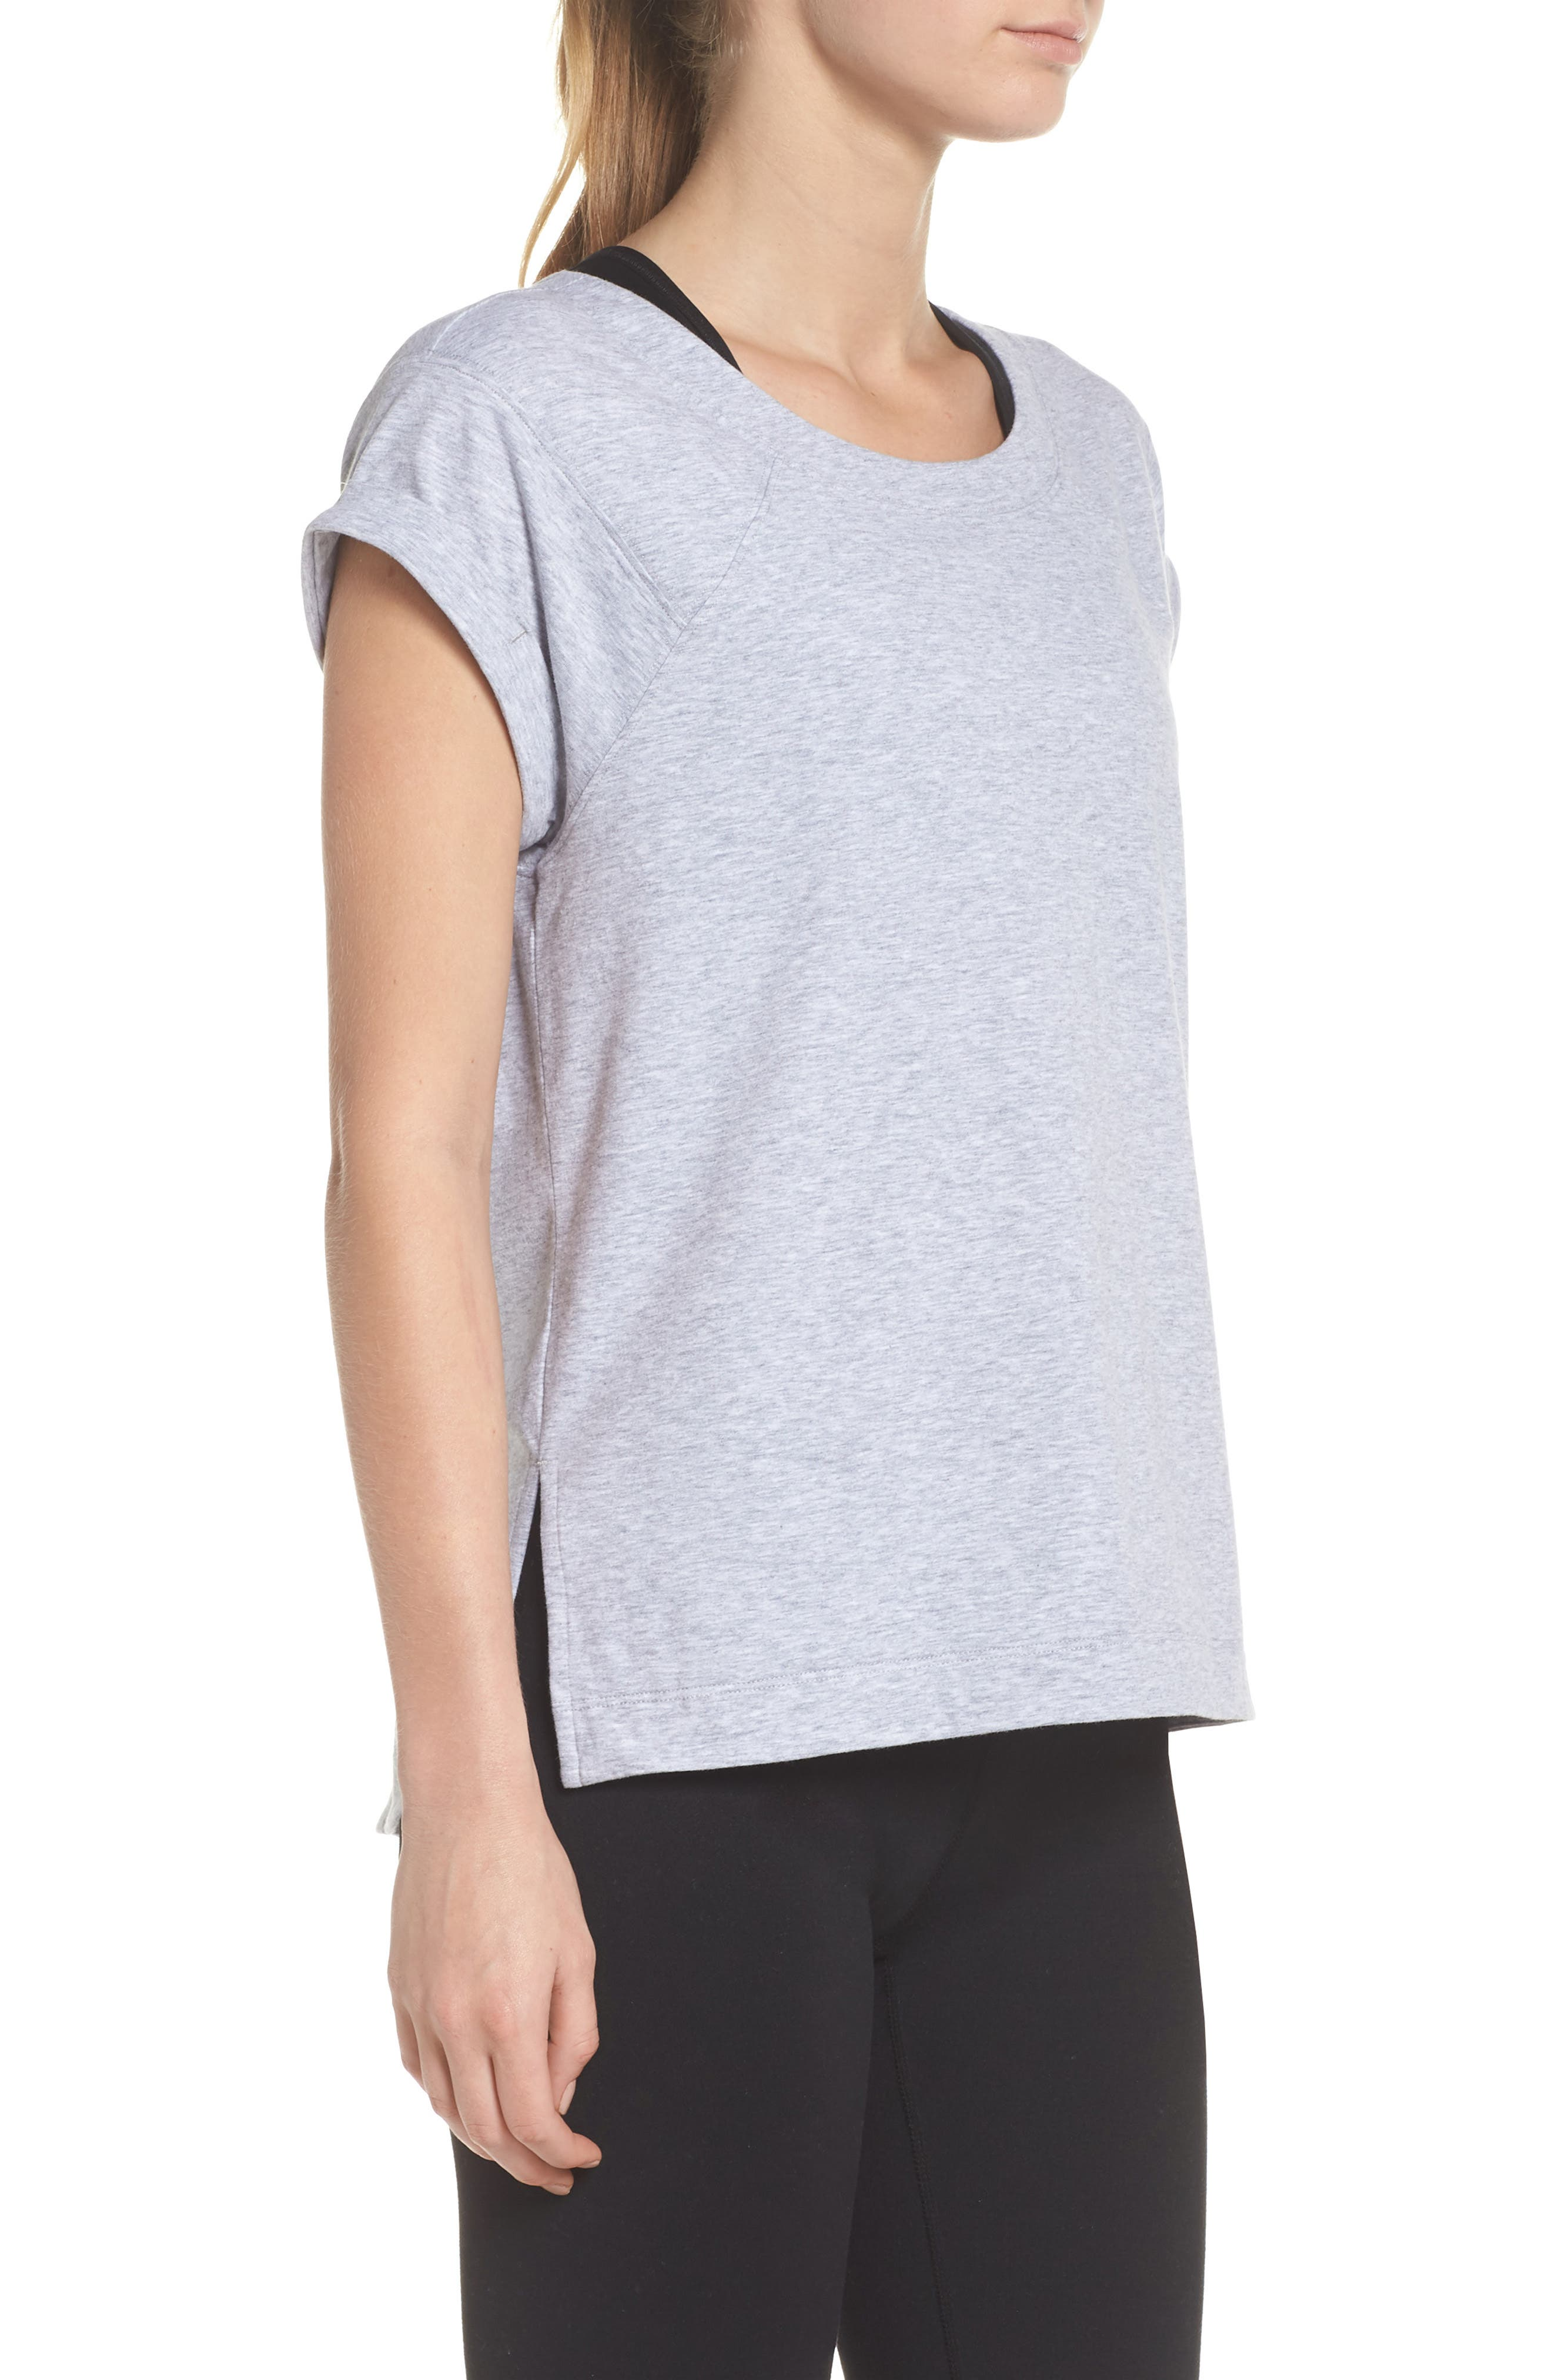 Karly Tee,                             Alternate thumbnail 3, color,                             GREY QUIET HEATHER